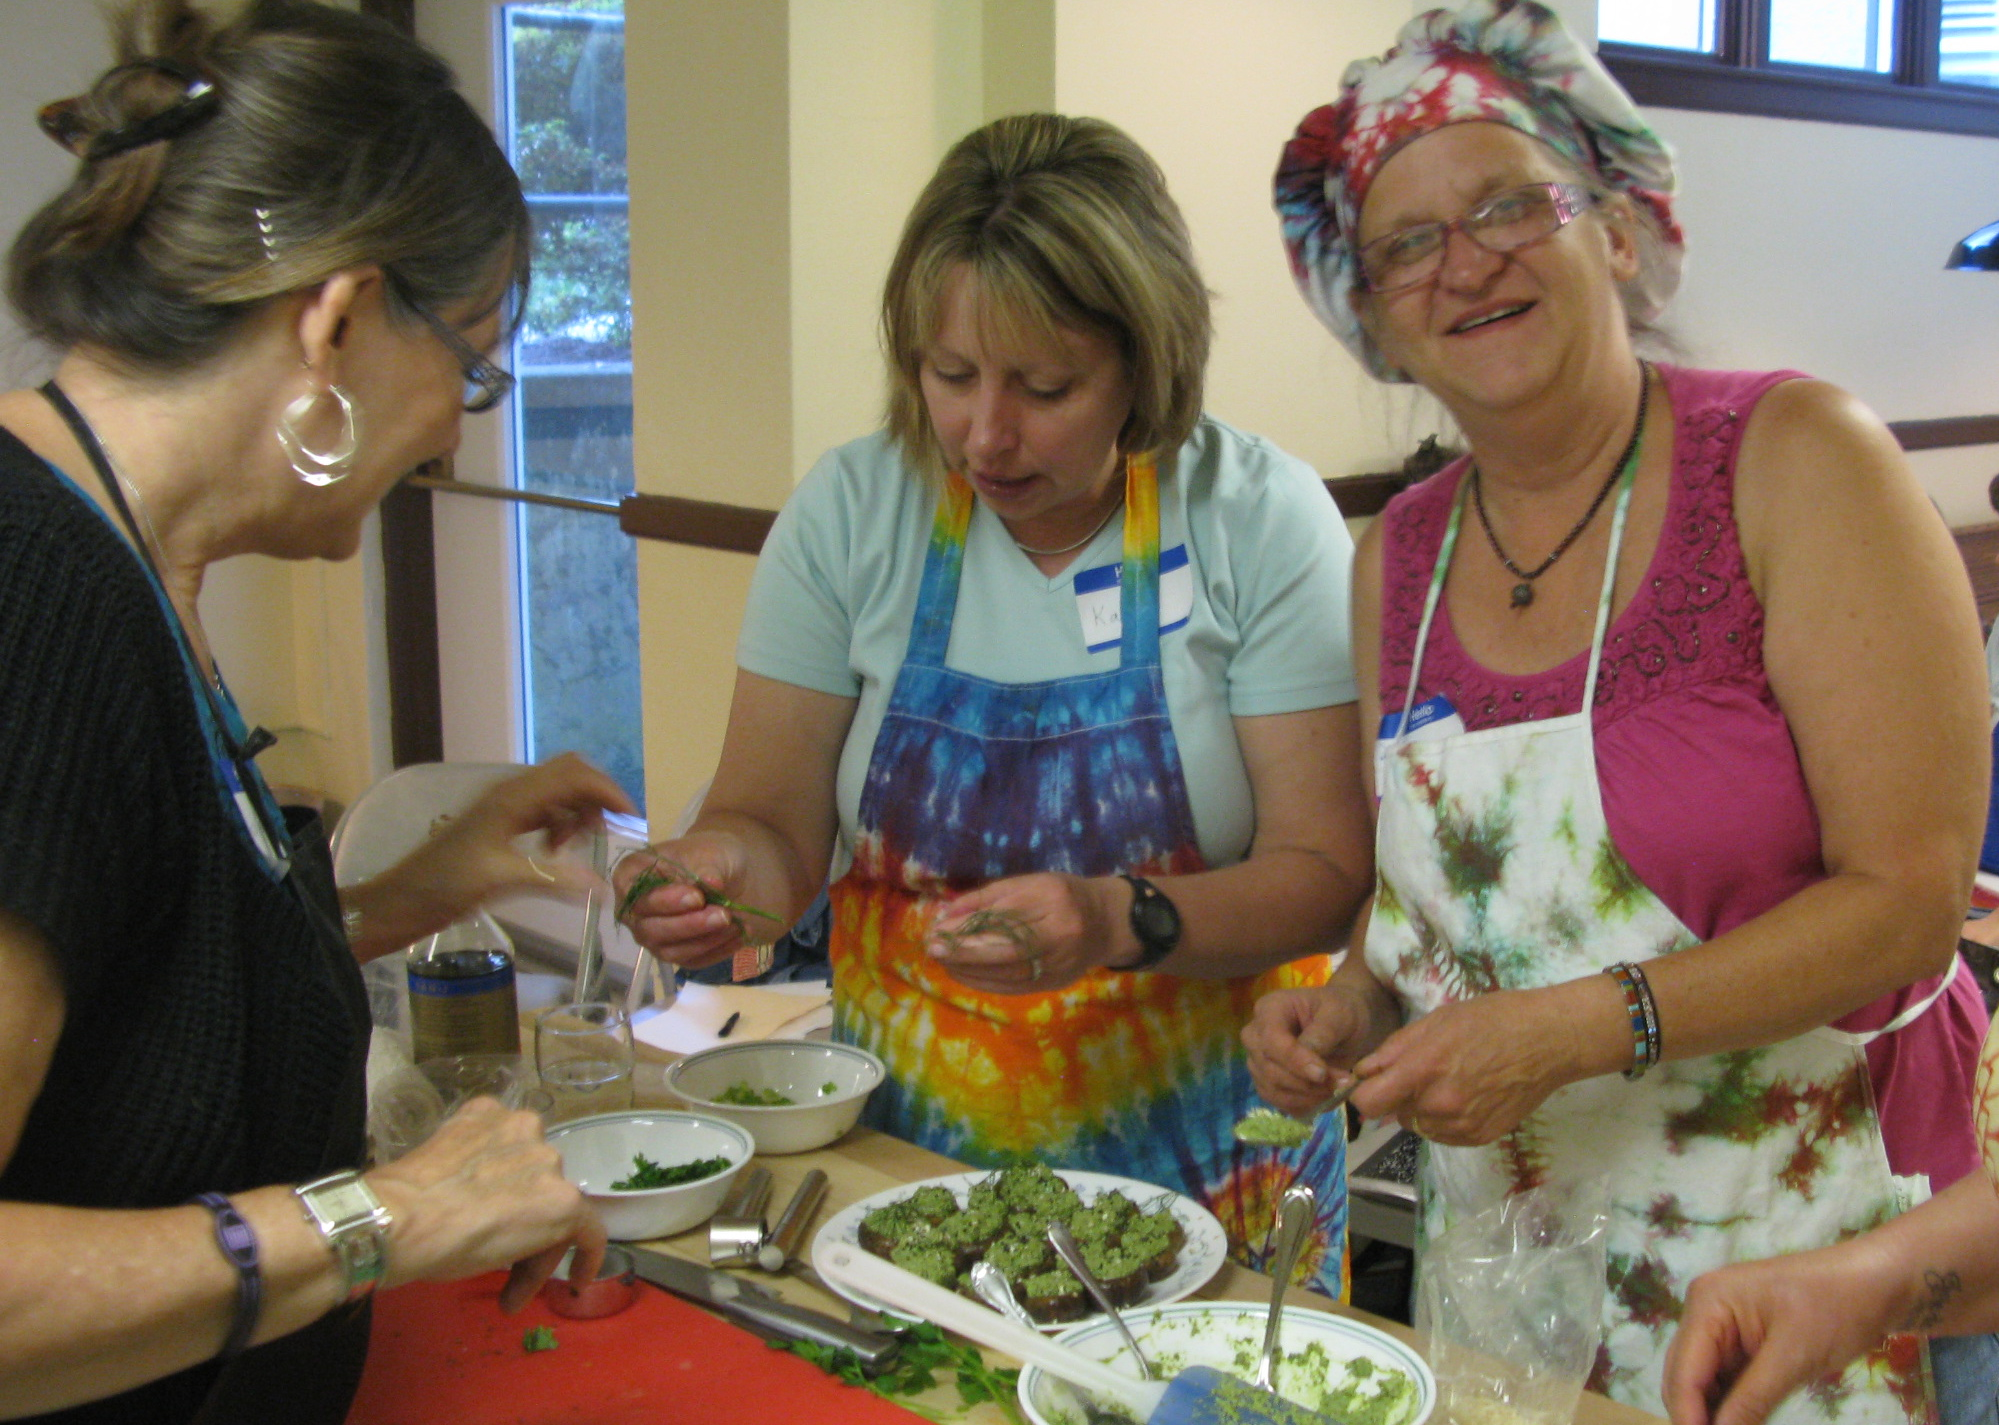 Vegan Recipes Vegan Workshops Vegan Classes Portland PDX